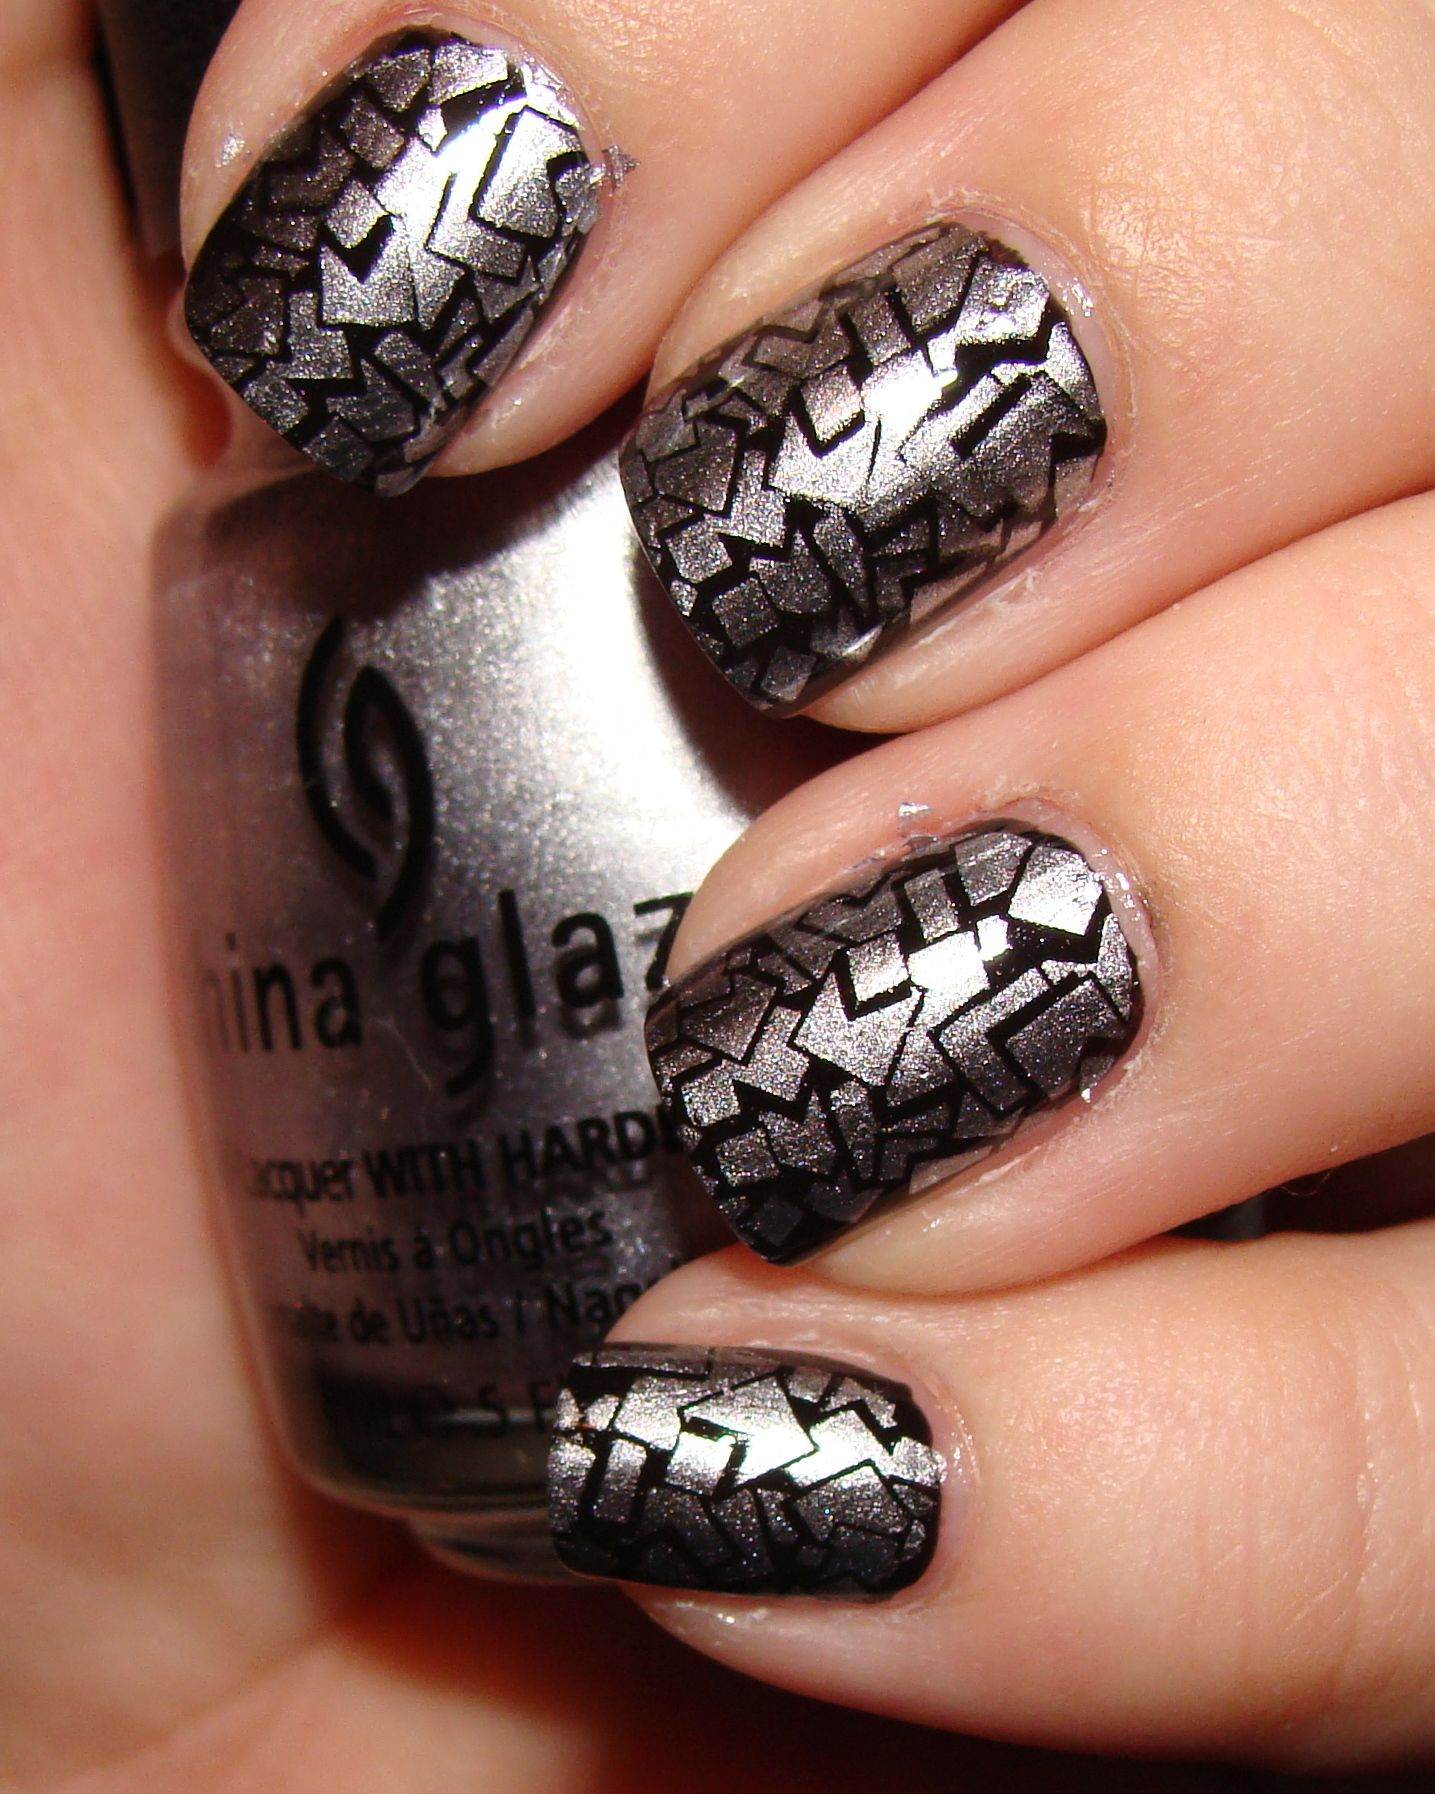 Silver Polish Black Stamping From Konad Nail Art Stamper Video